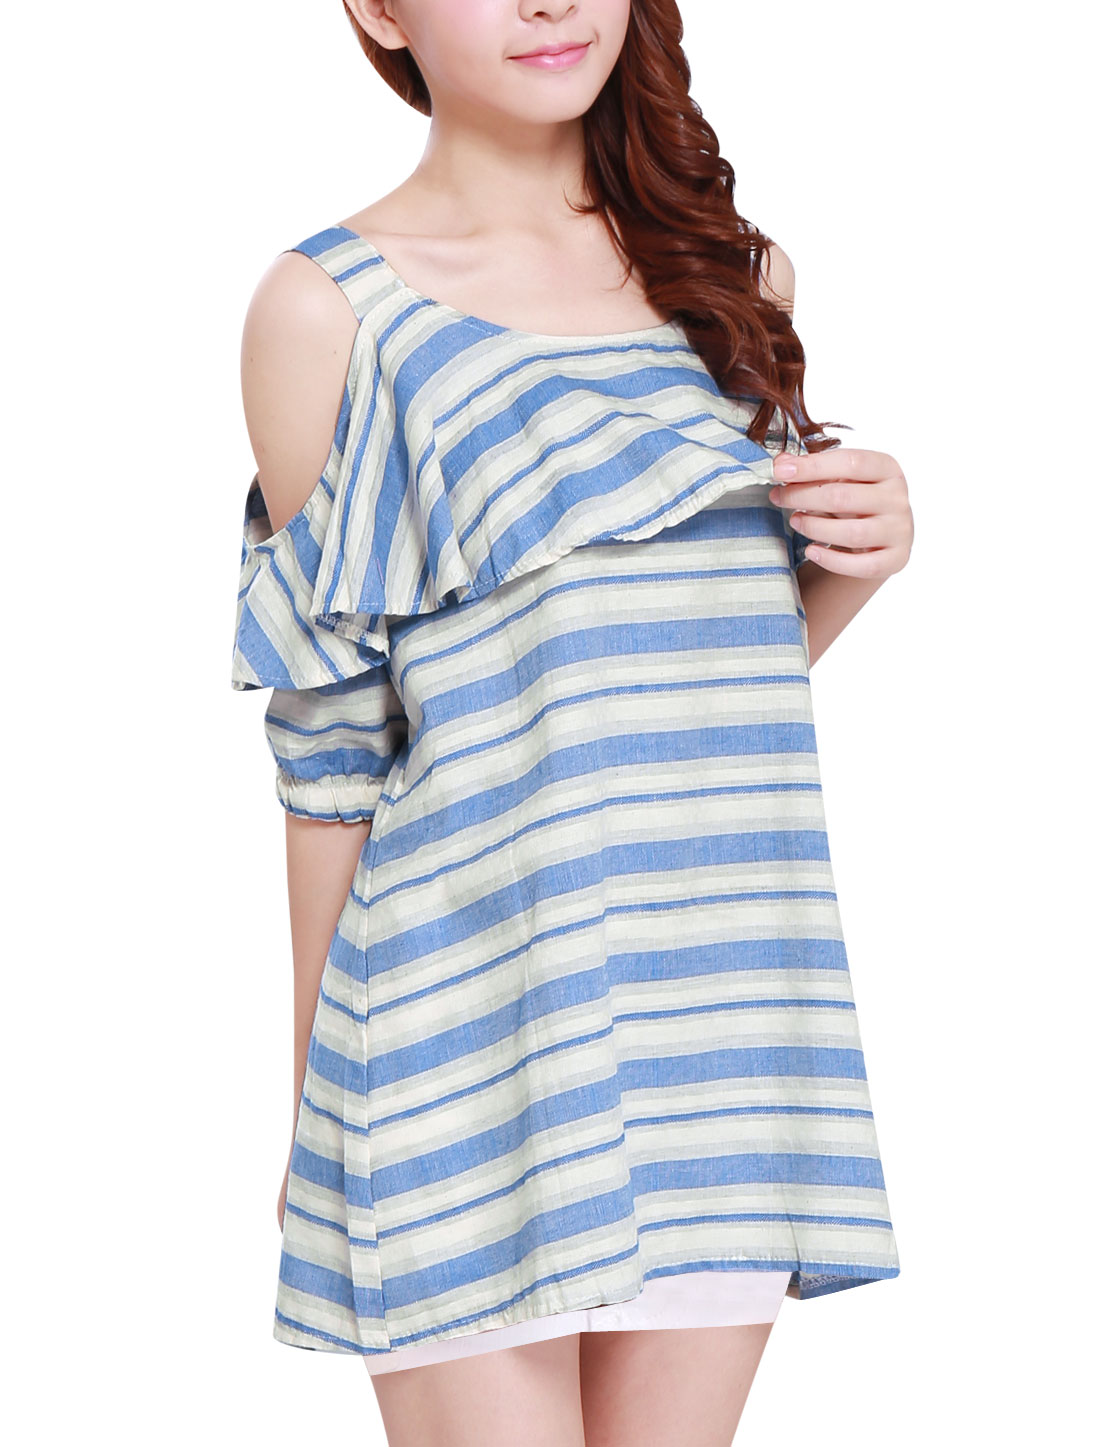 Lady Cut Out Shoulder Stripes Ruffled Upper Linen Tunic Top Blue White S